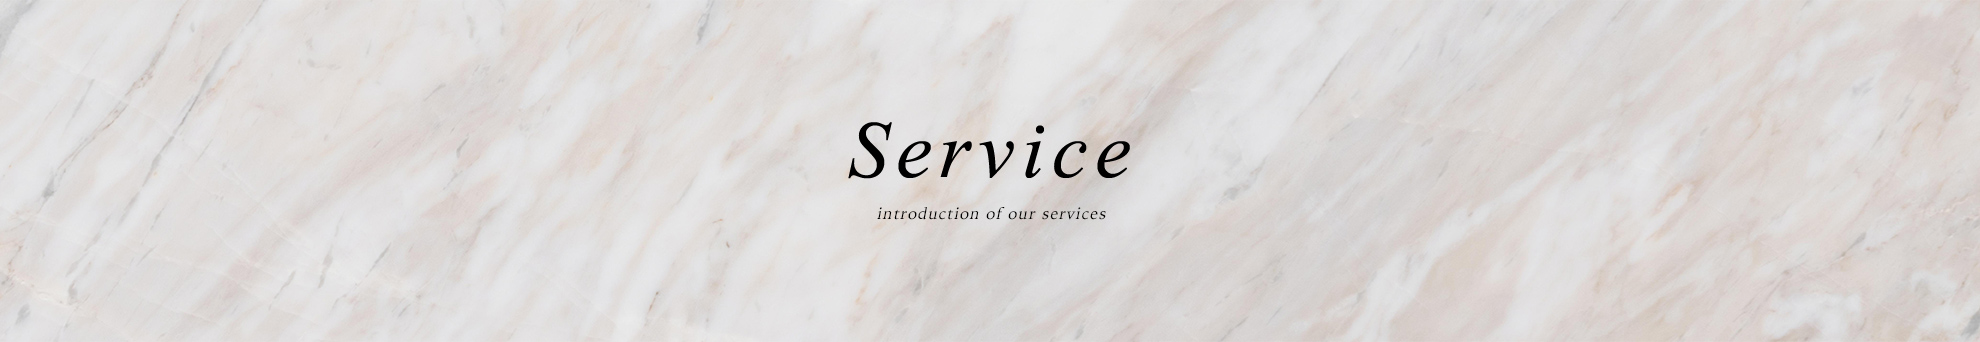 Service introduction of our services